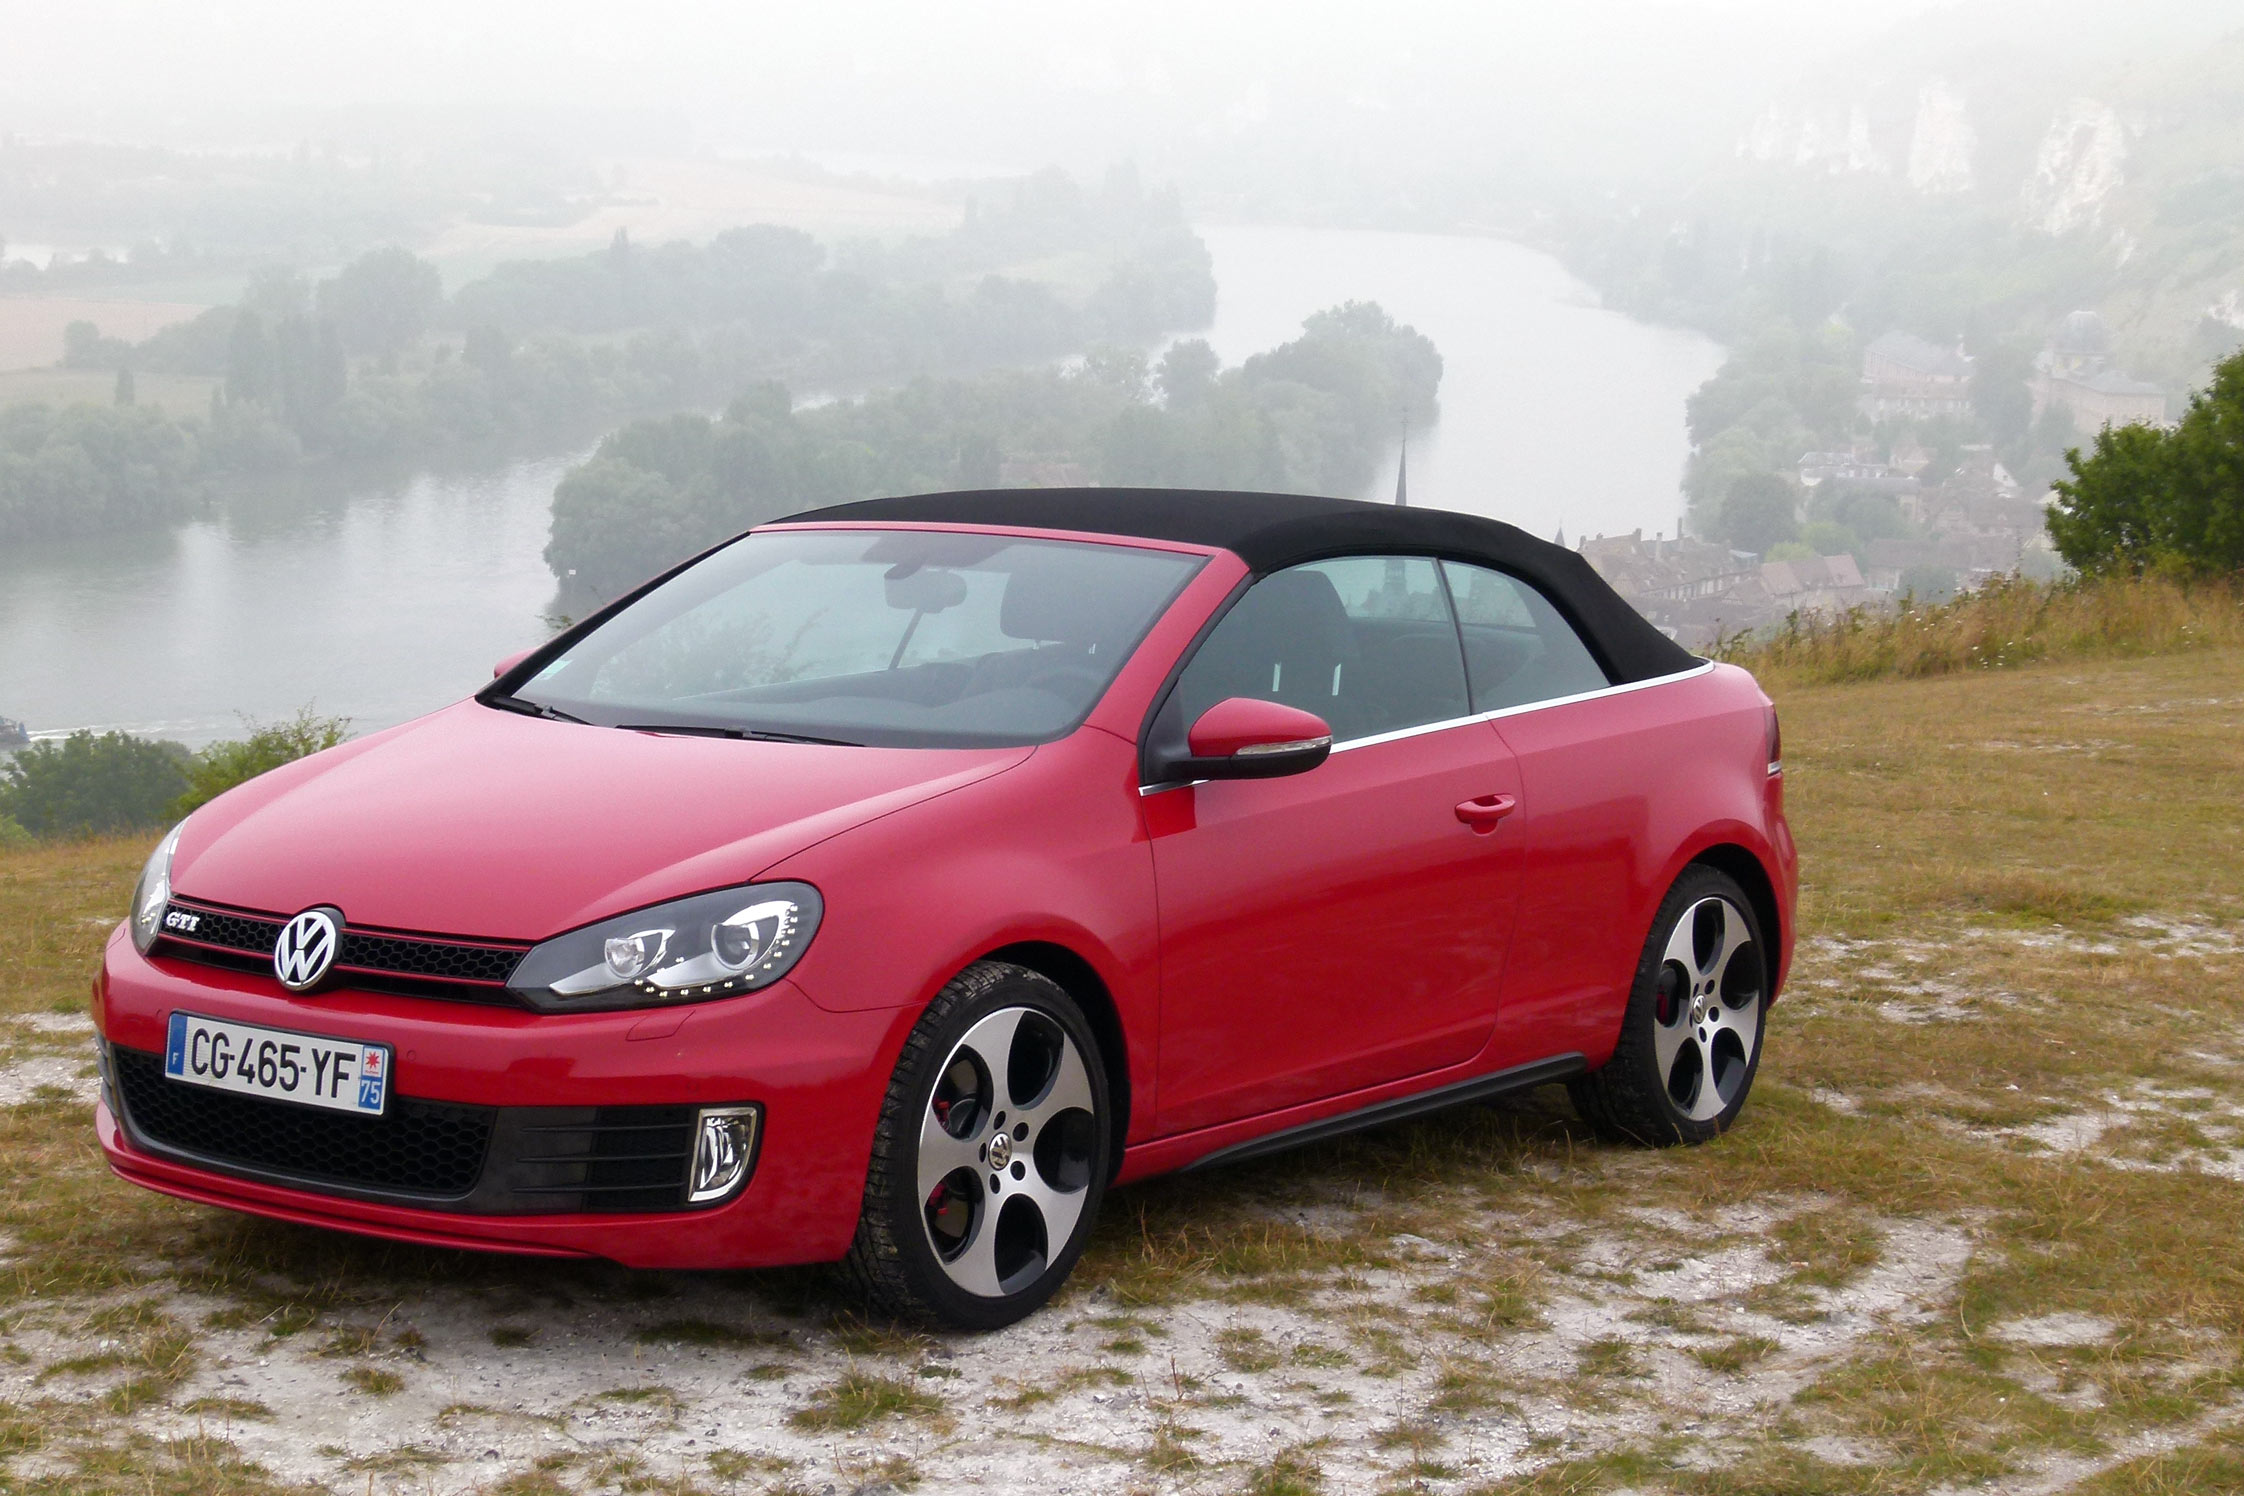 essai volkswagen golf gti cabriolet motorlegend. Black Bedroom Furniture Sets. Home Design Ideas